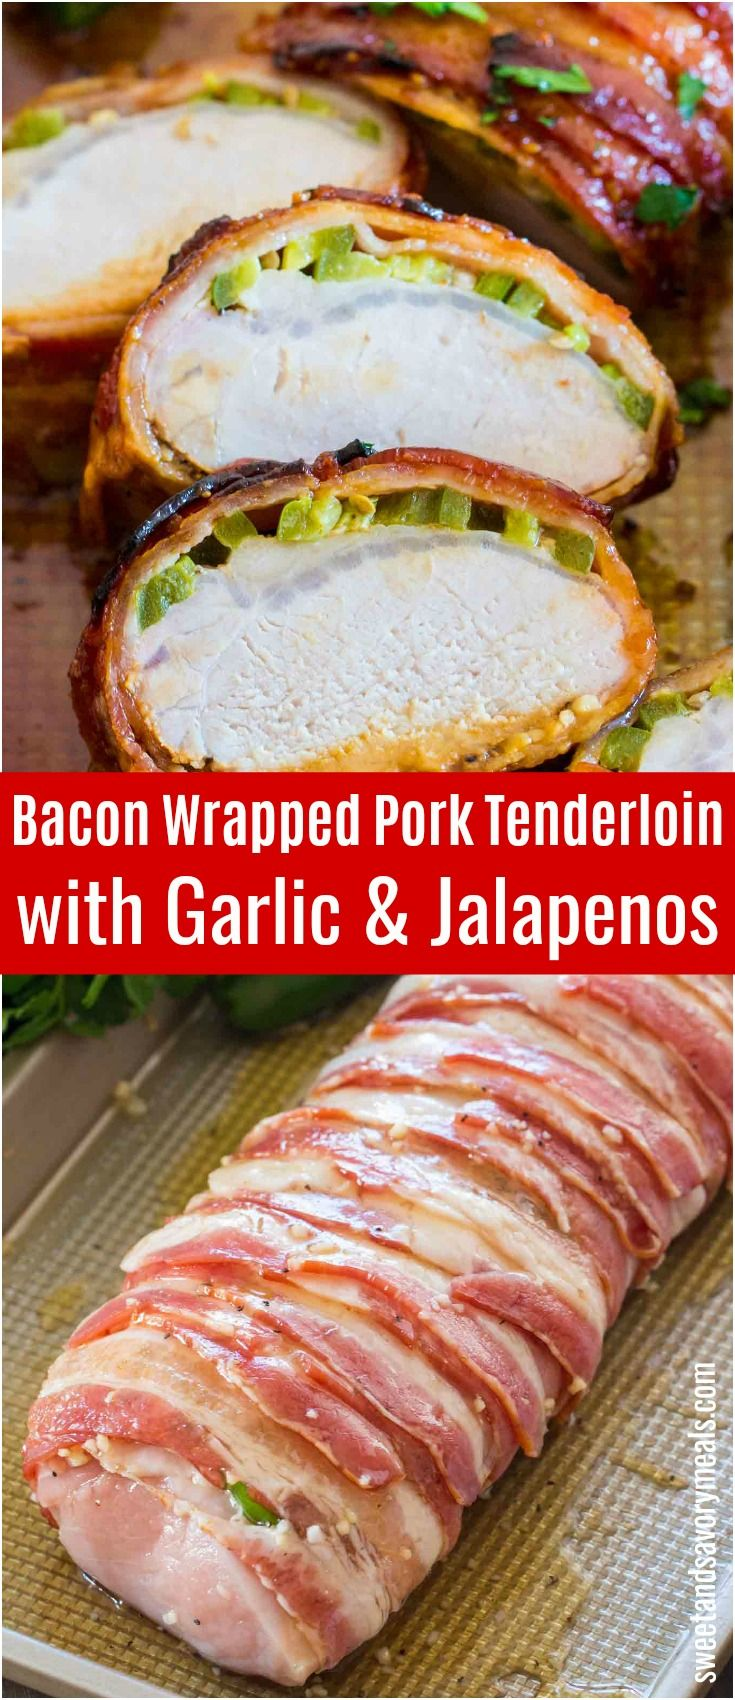 Bacon Wrapped Pork Tenderloin is crispy on the outside and juicy on the inside. Made with garlic, honey and jalapeños for extra flavor. #porkrecipes #porktenderloin #bacon #onepan #pork